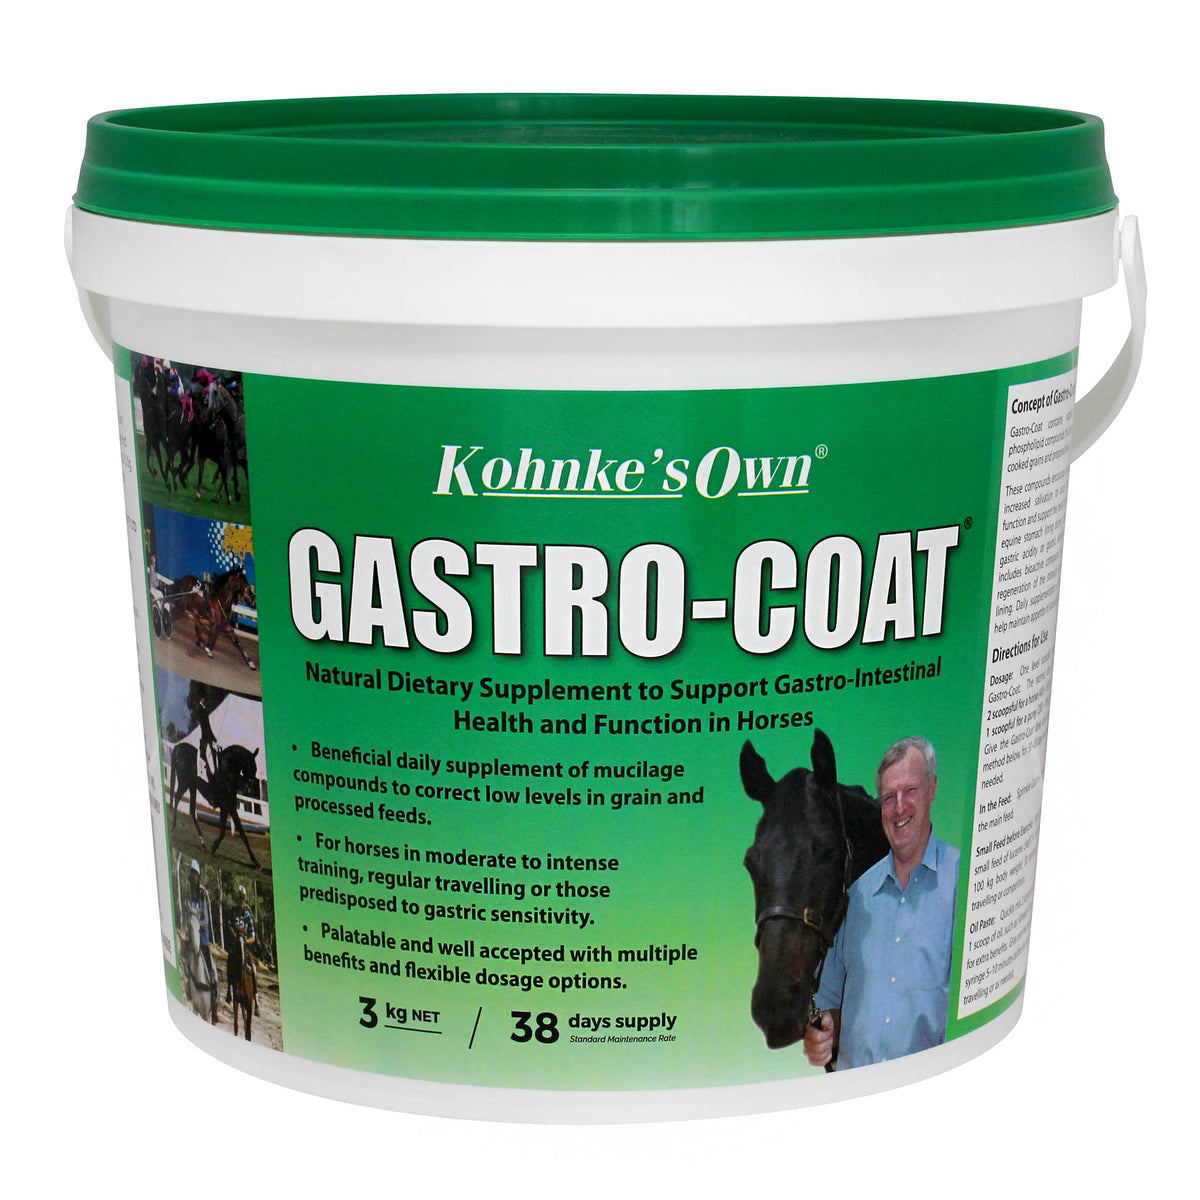 Kohnke's Own Gastro Coat